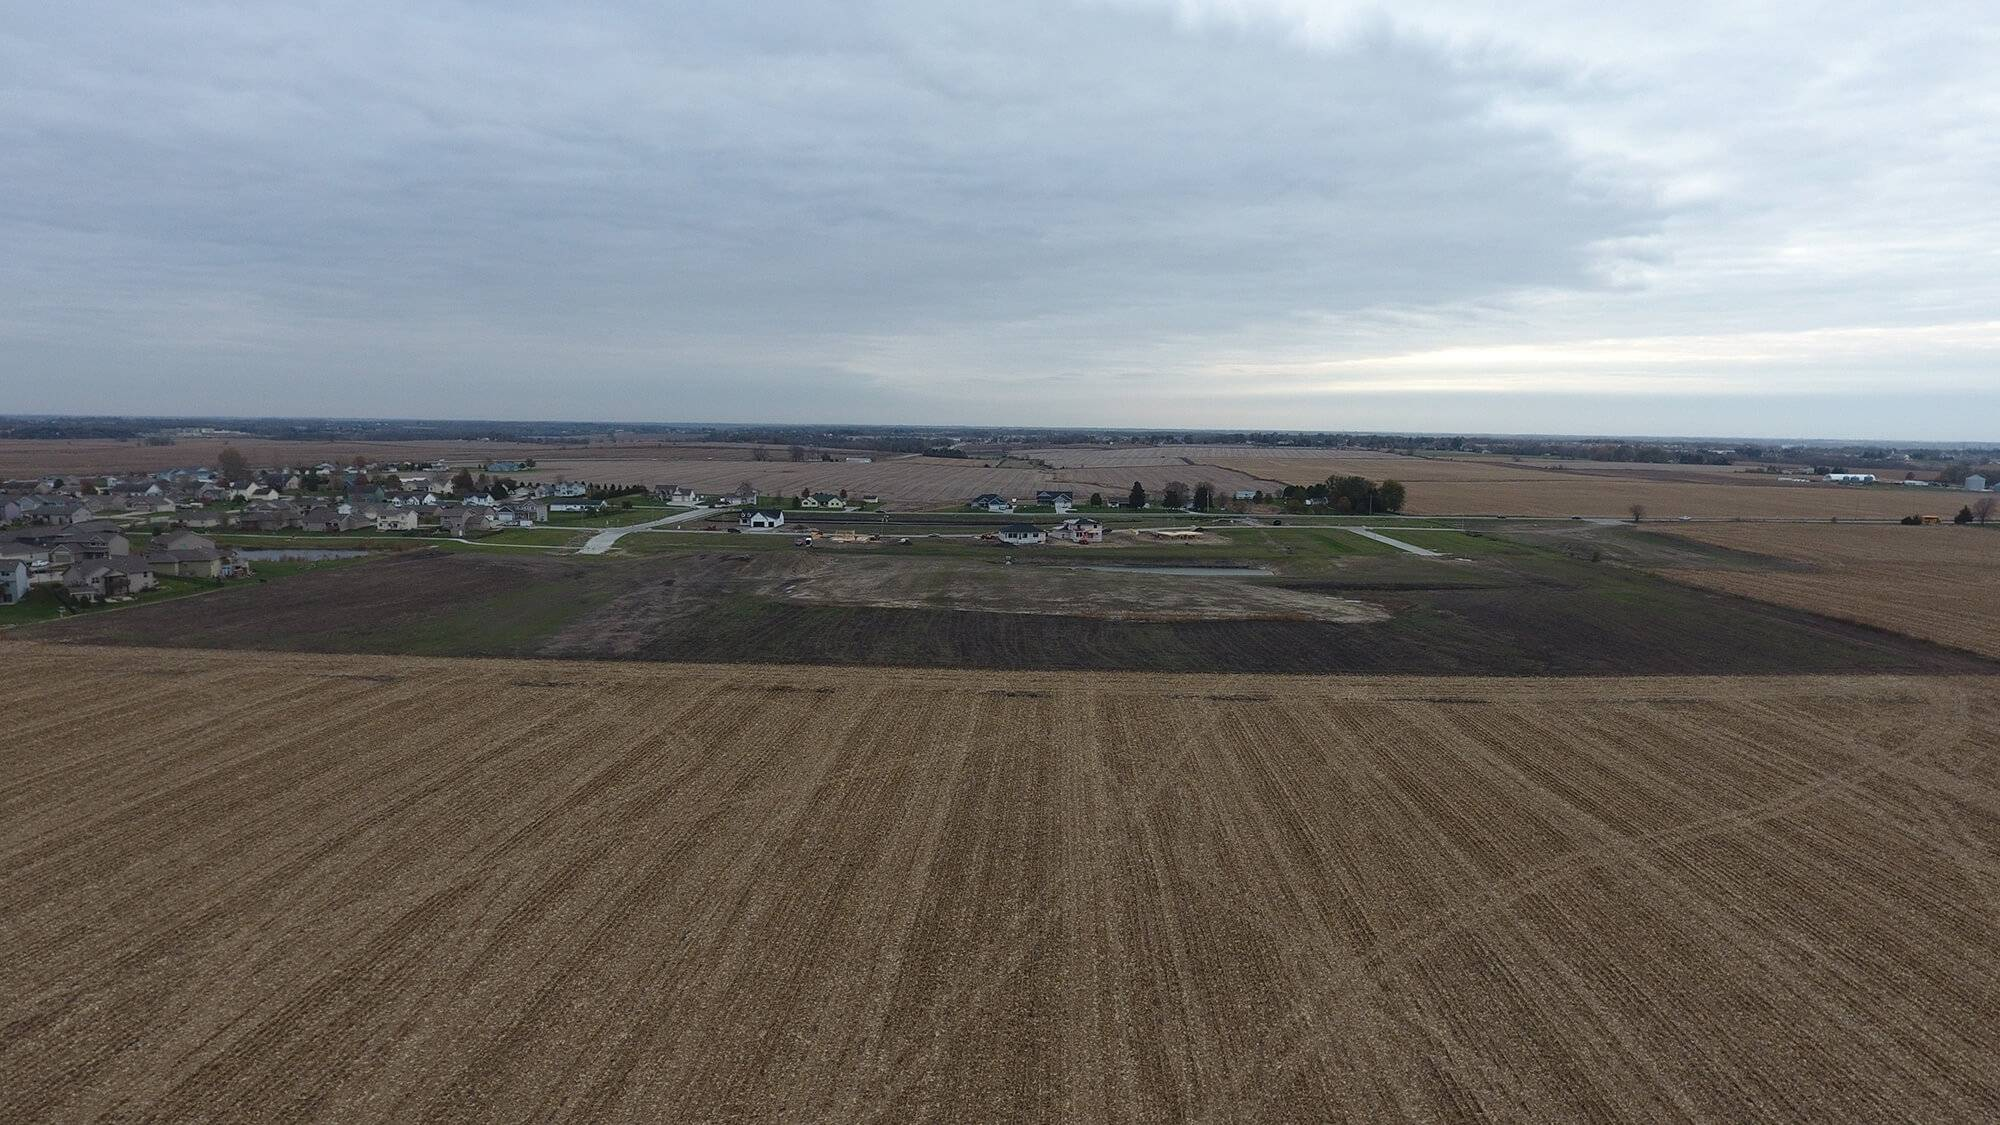 An aerial view of the Huber Grading project at Brookhaven Estates.